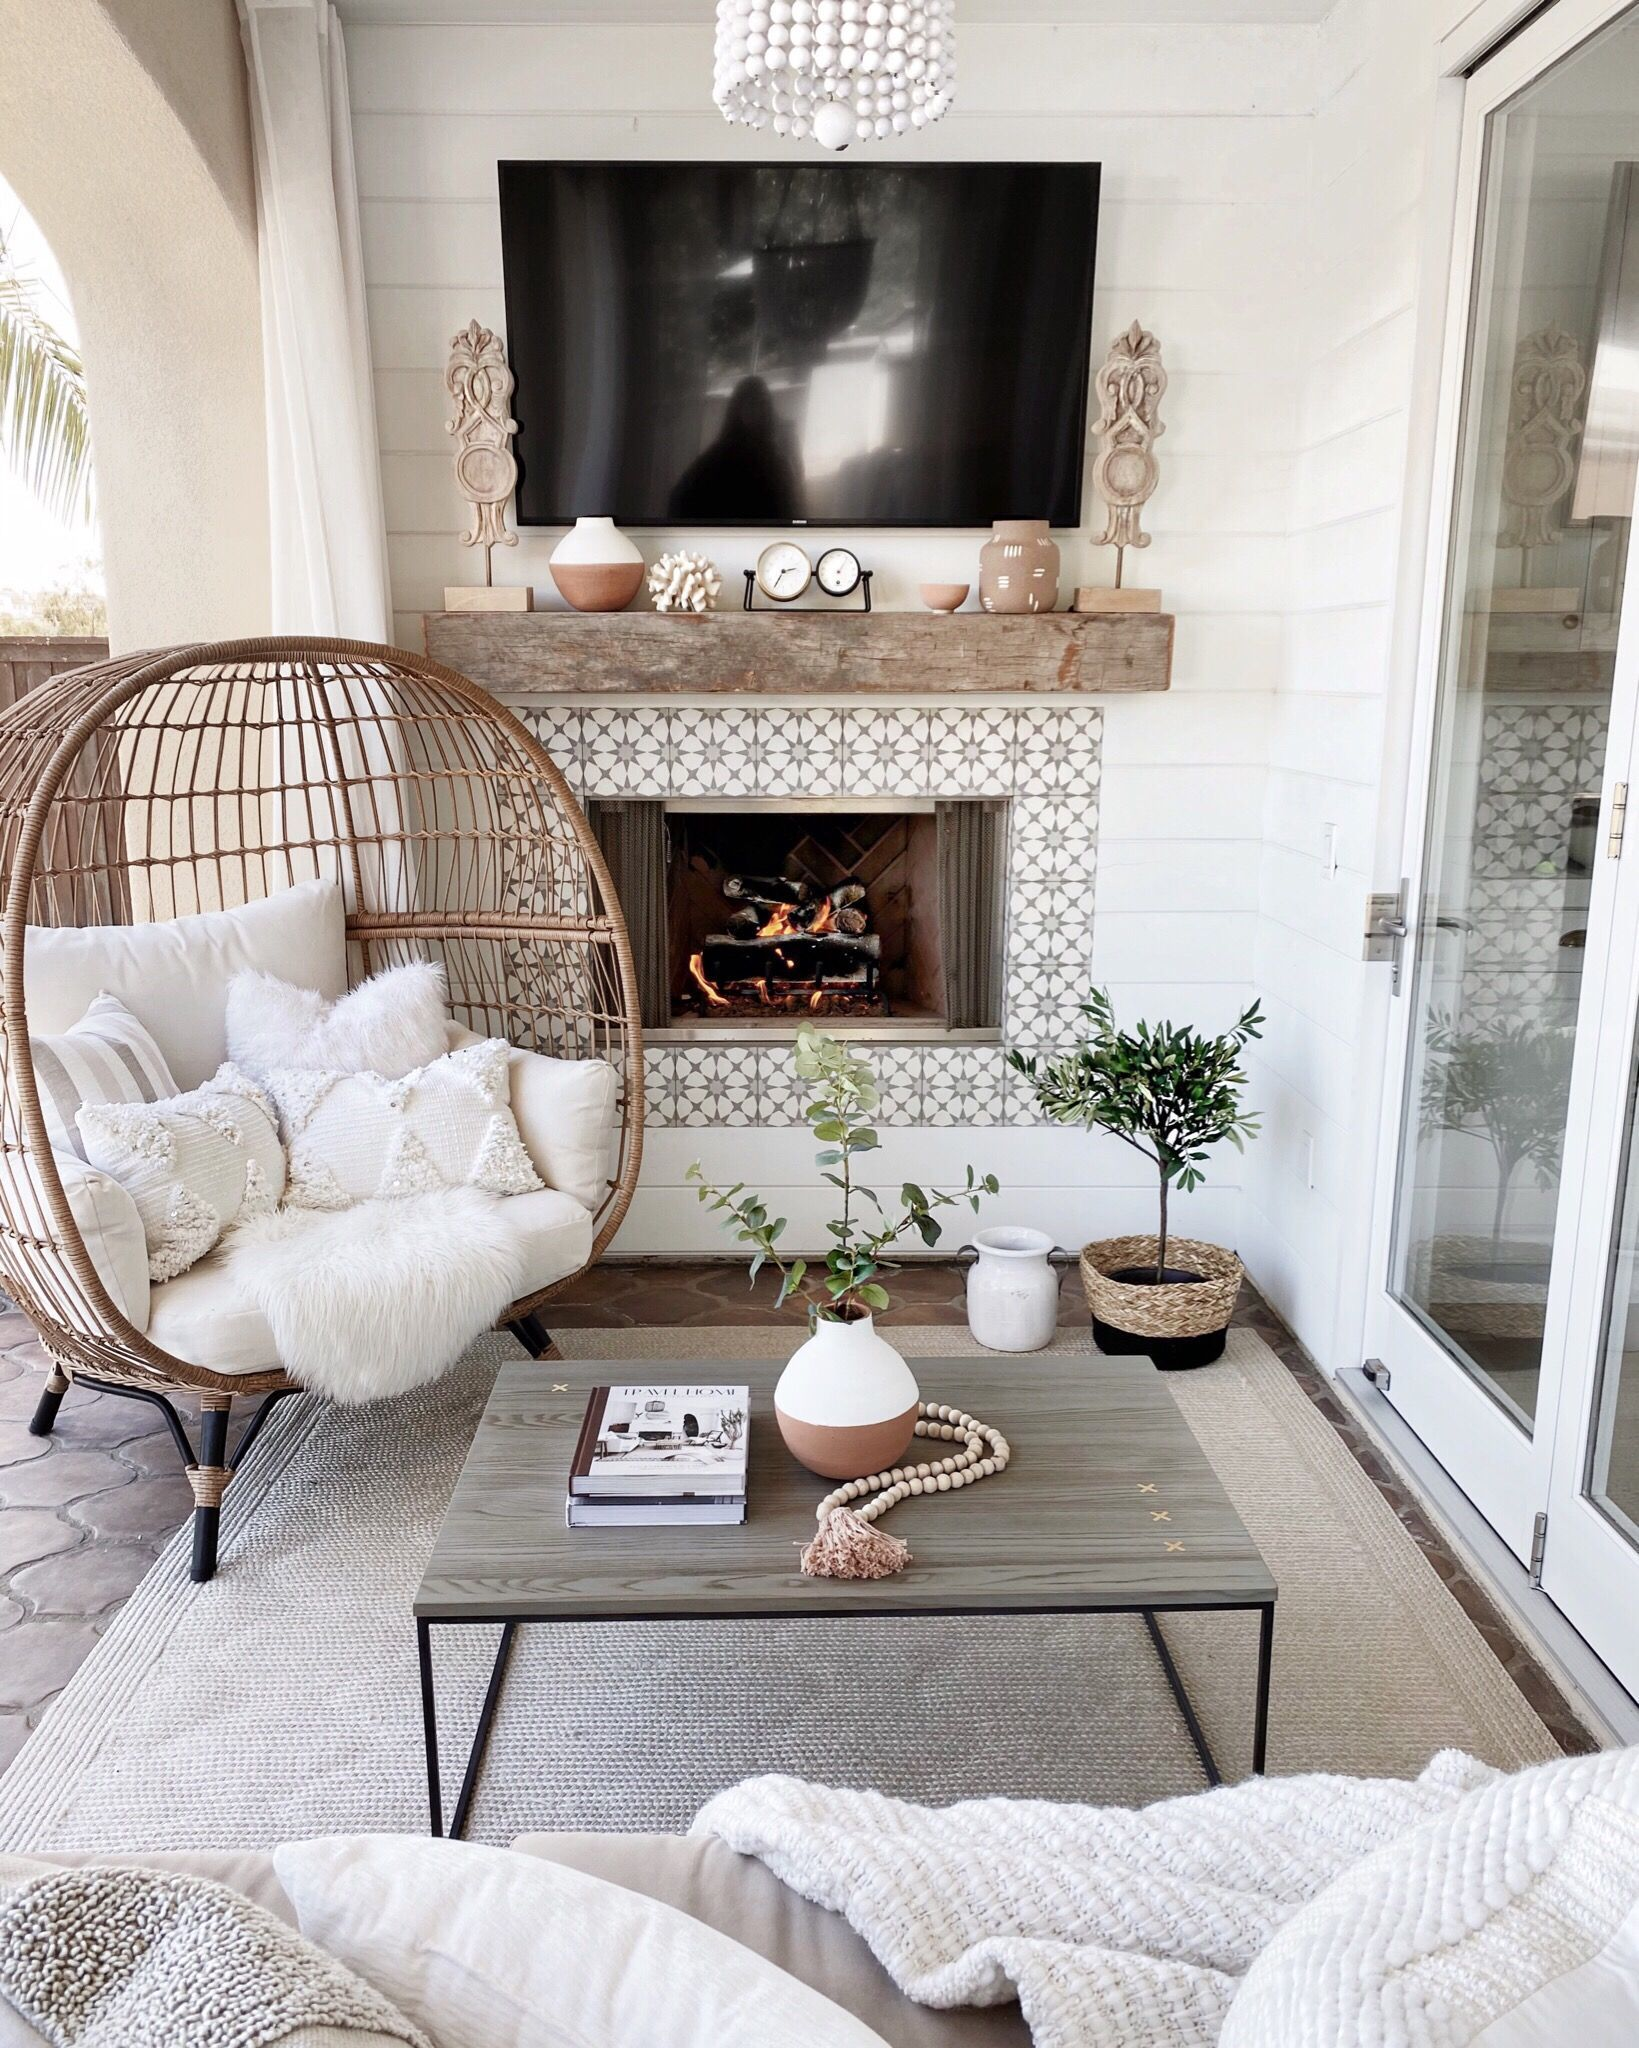 Outdoor Sitting Area In 2020 Stylish Living Room Home Home Decor #throw #blankets #for #living #room